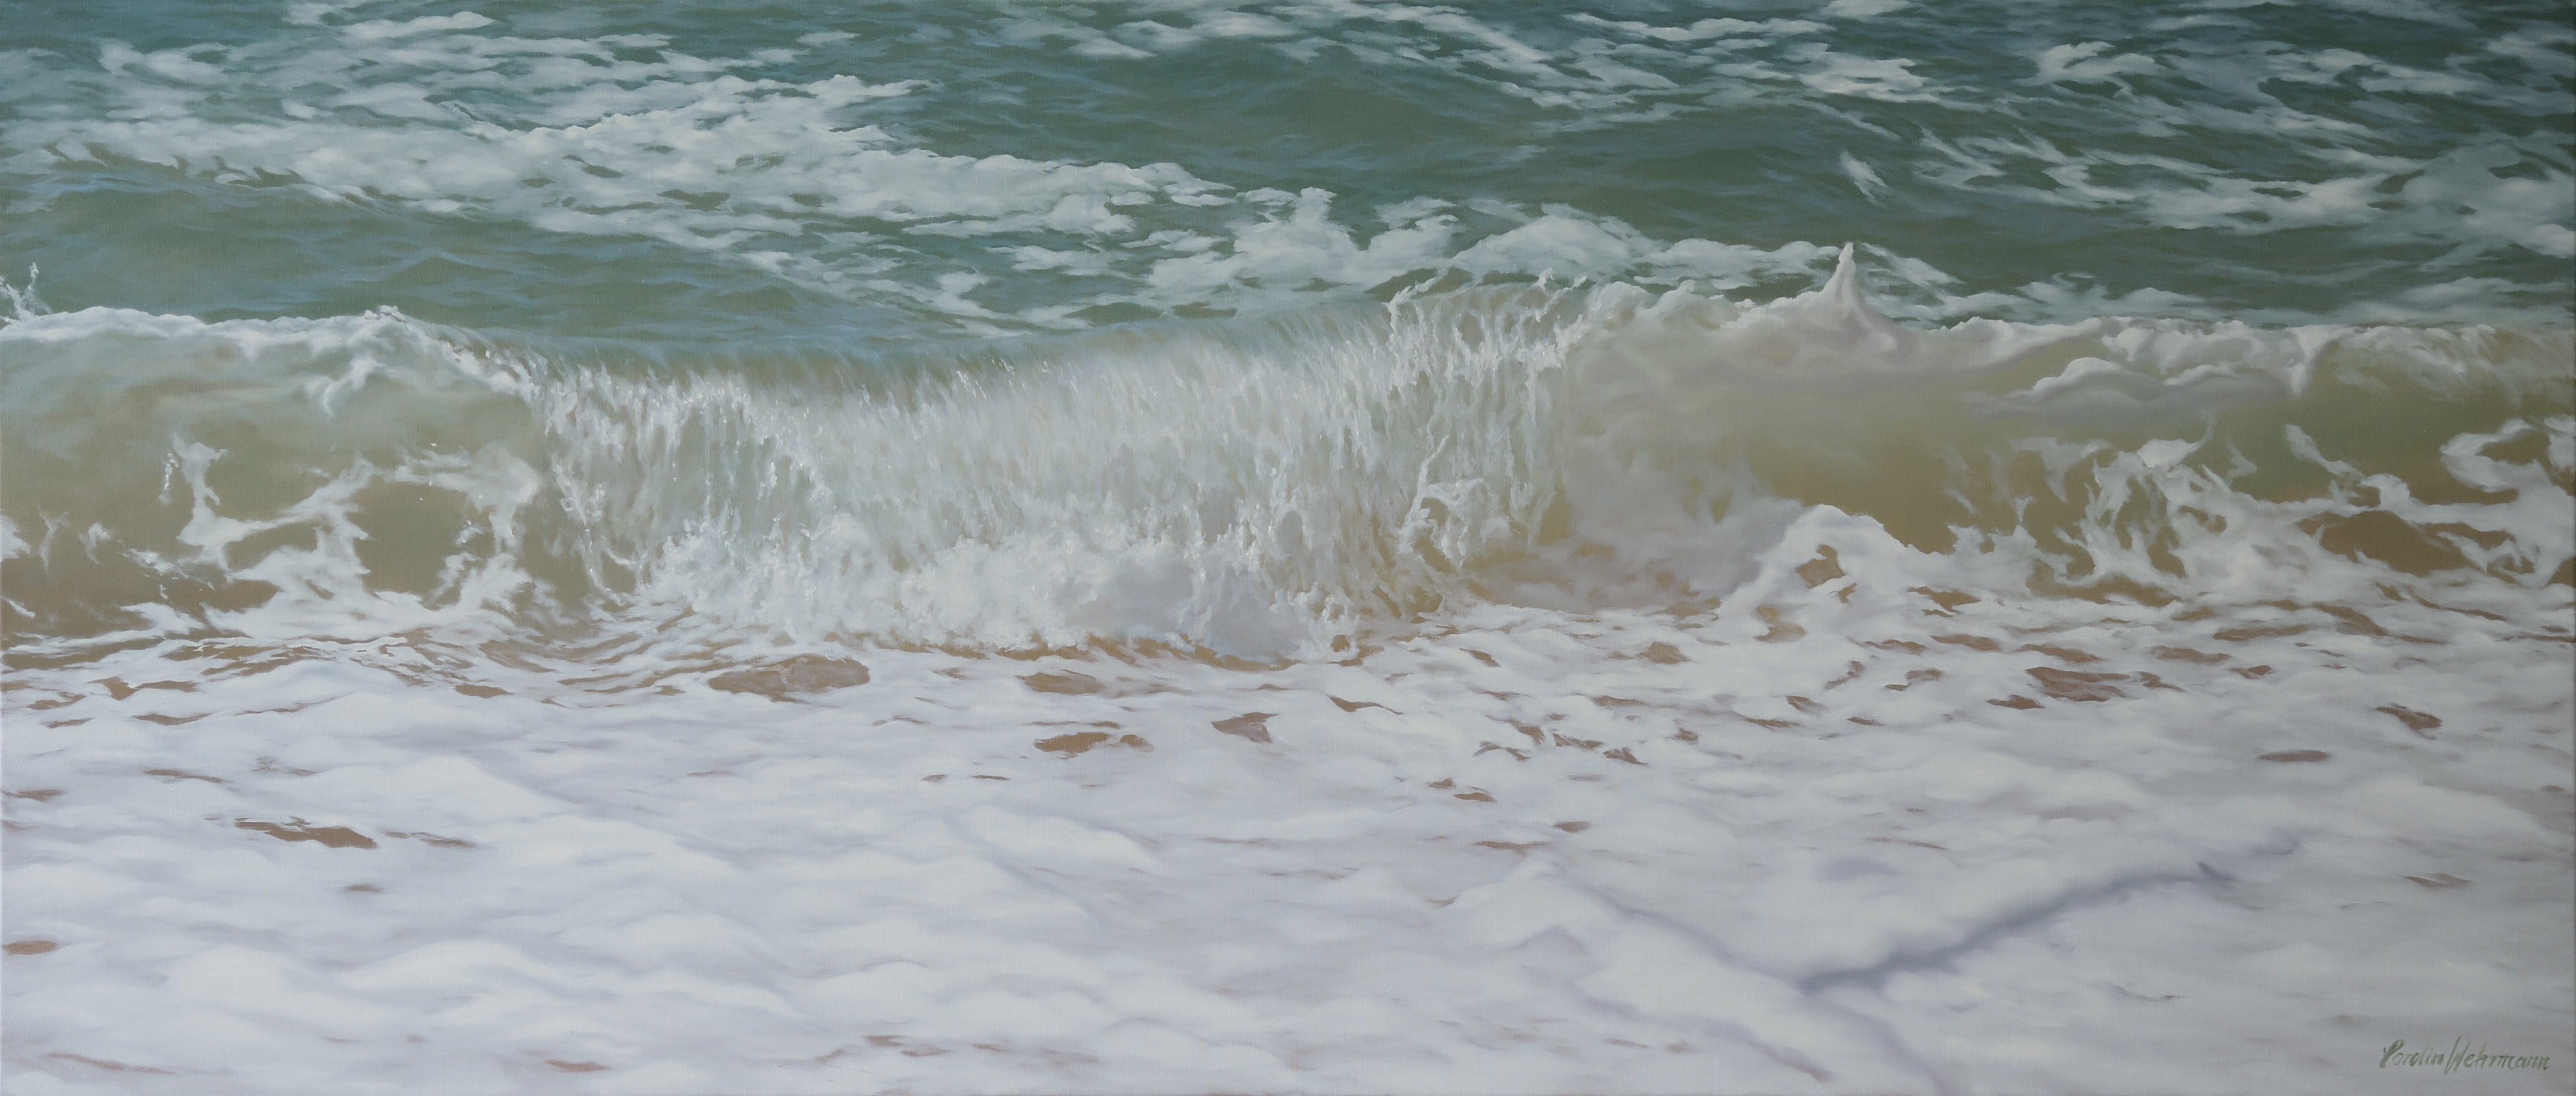 Carolin Wehrmann - West BEach Summer Wave